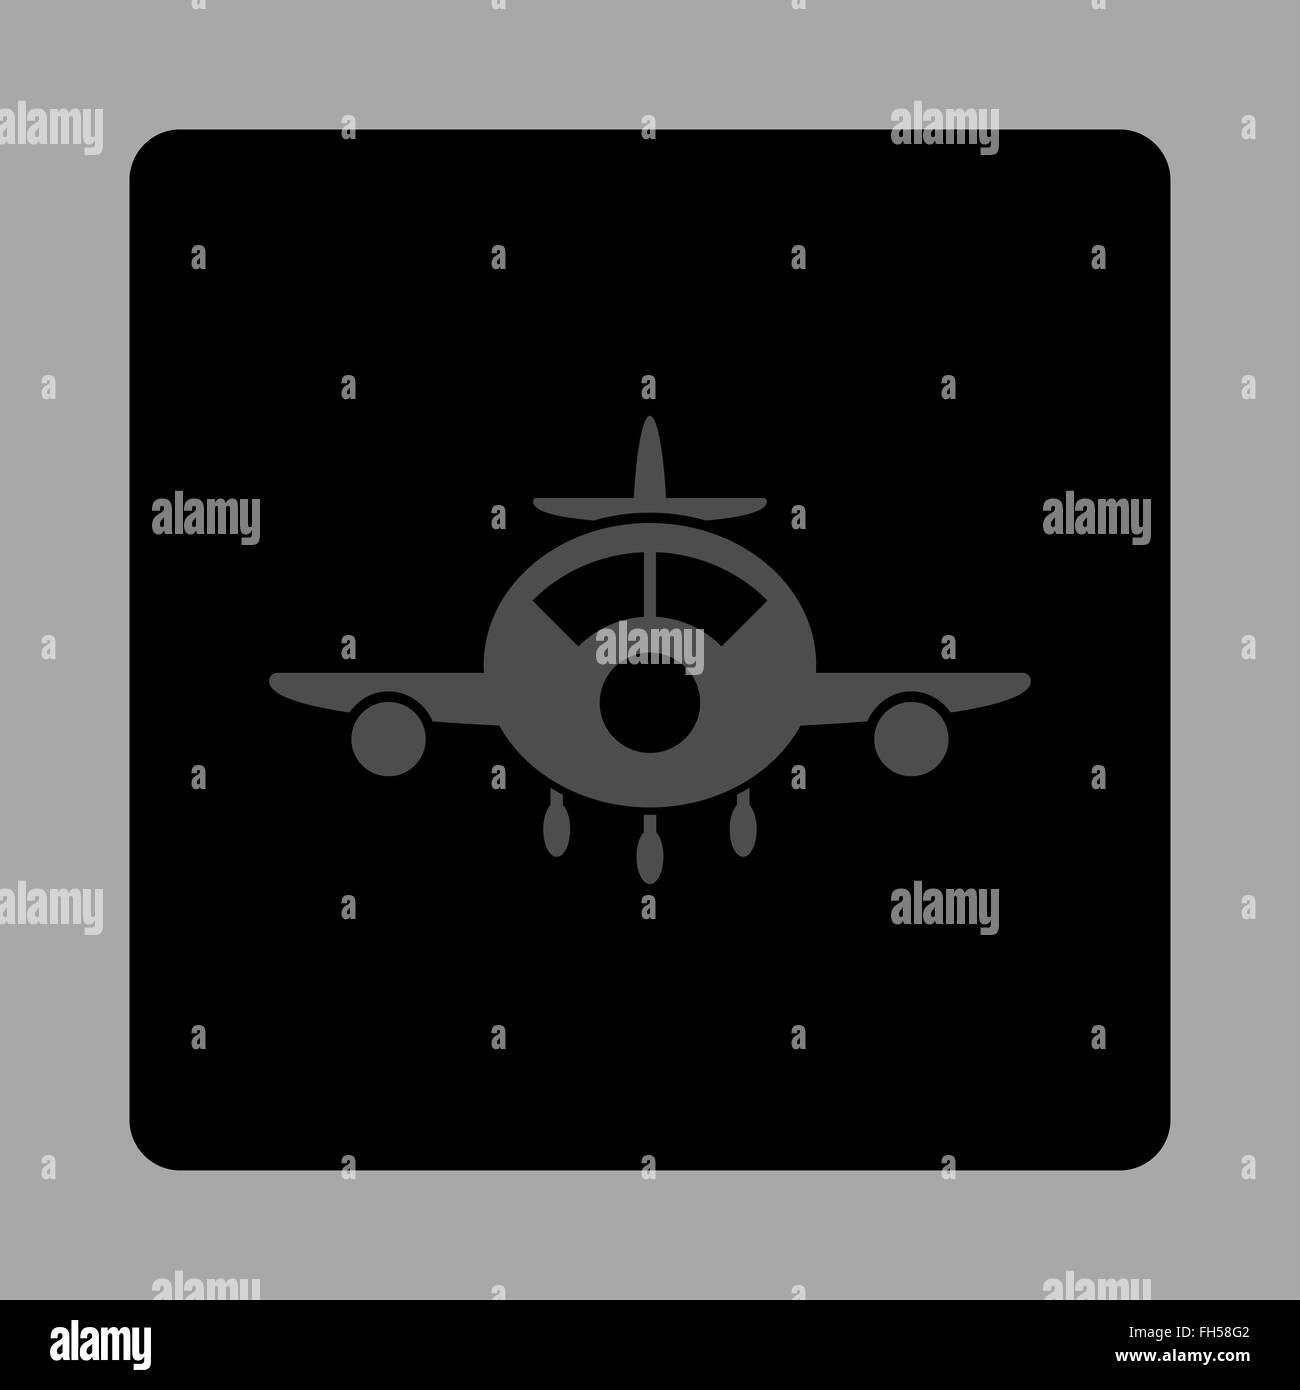 Aviation Rounded Square Button - Stock Image